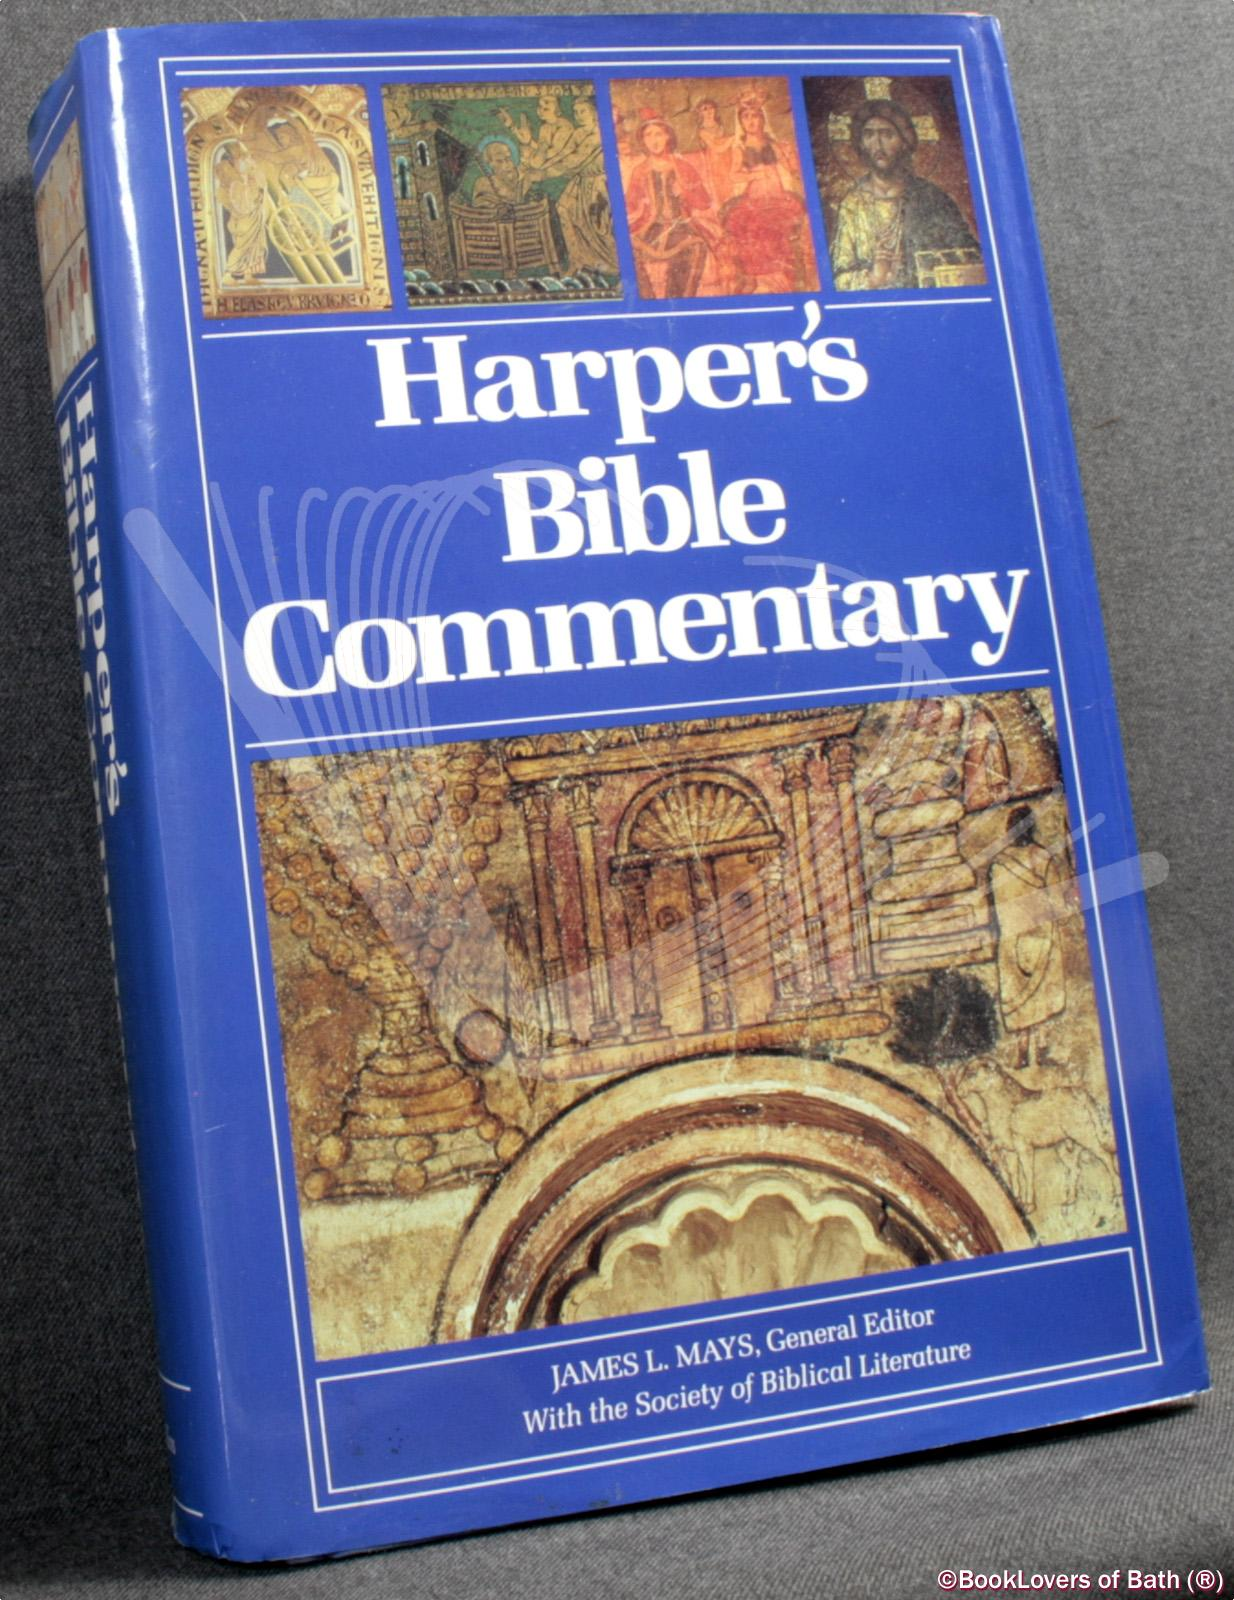 Harper's Bible Commentary - Edited by James L. Mays